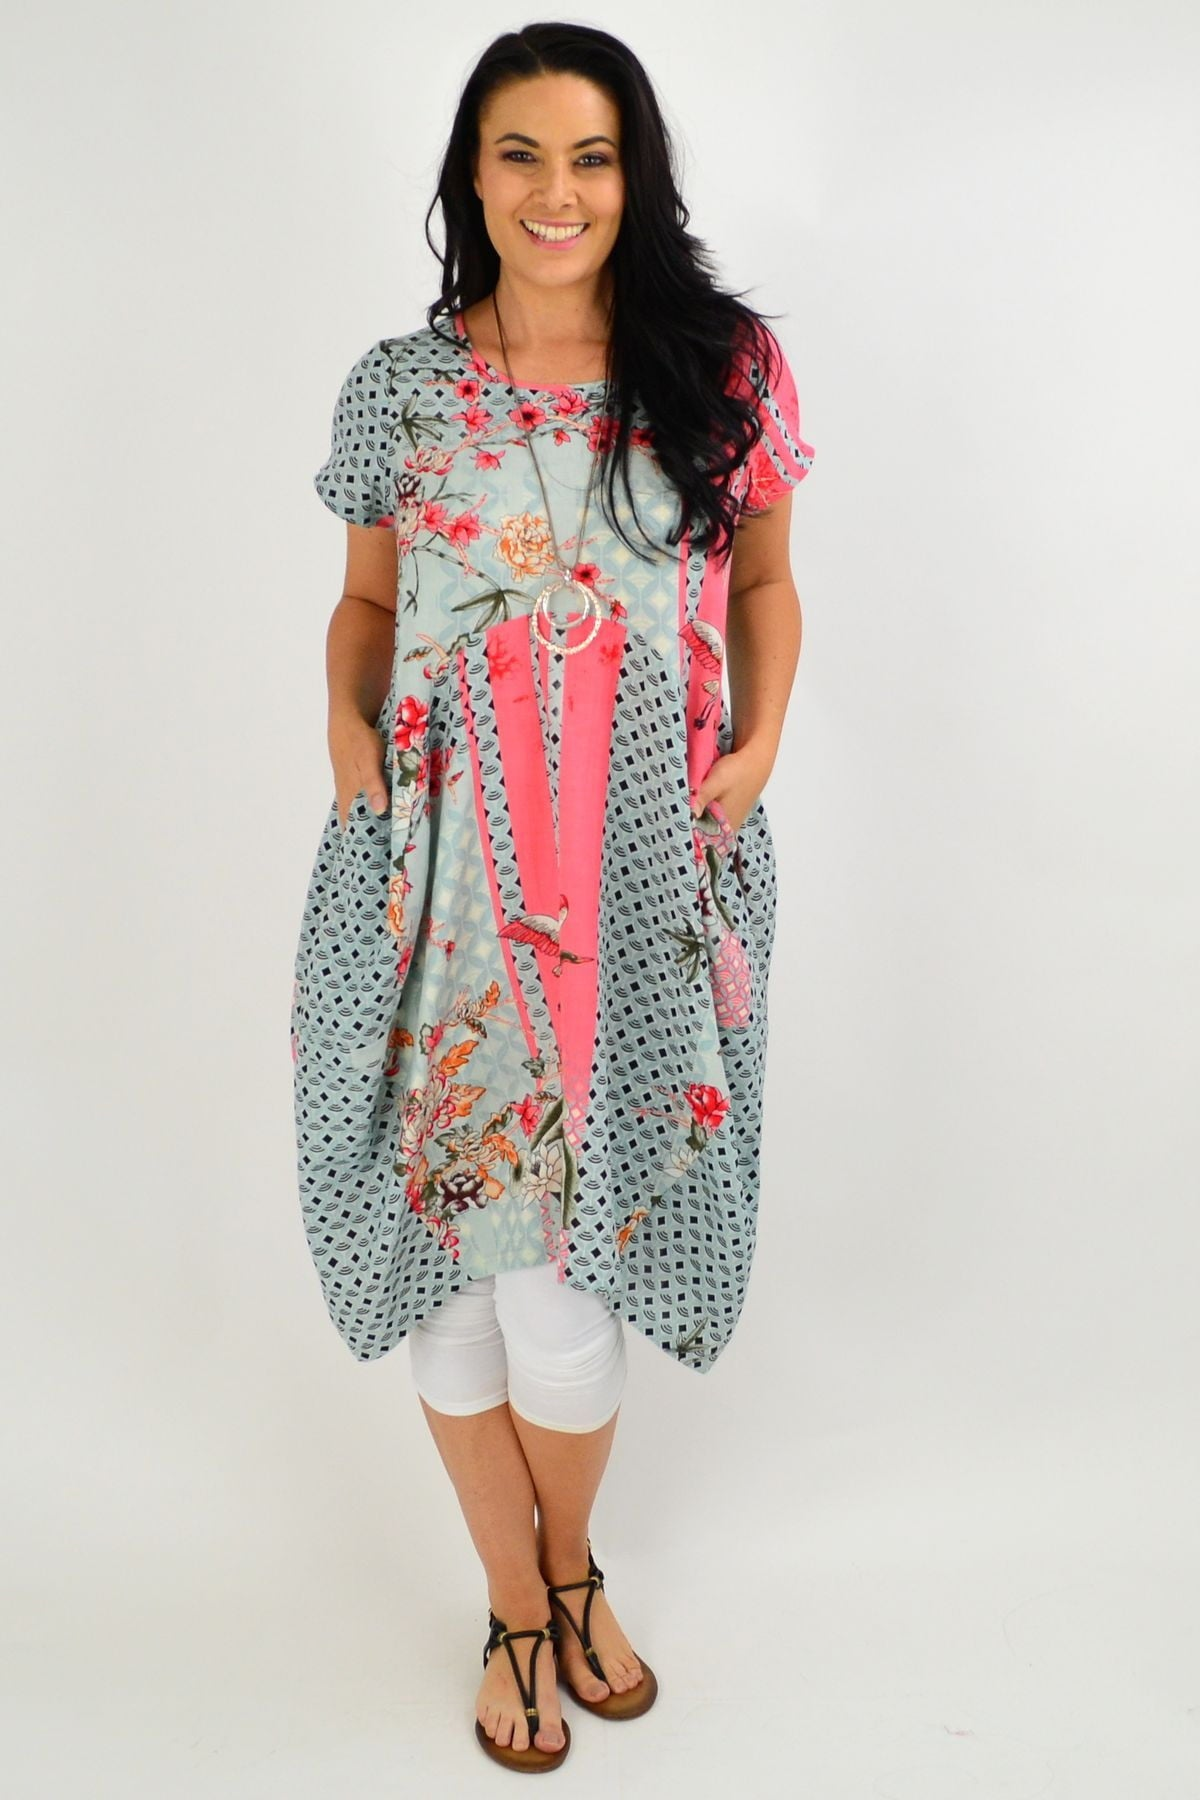 Cherry Blossom Cocoon Tunic Dress | I Love Tunics | Tunic Tops | Tunic | Tunic Dresses  | womens clothing online